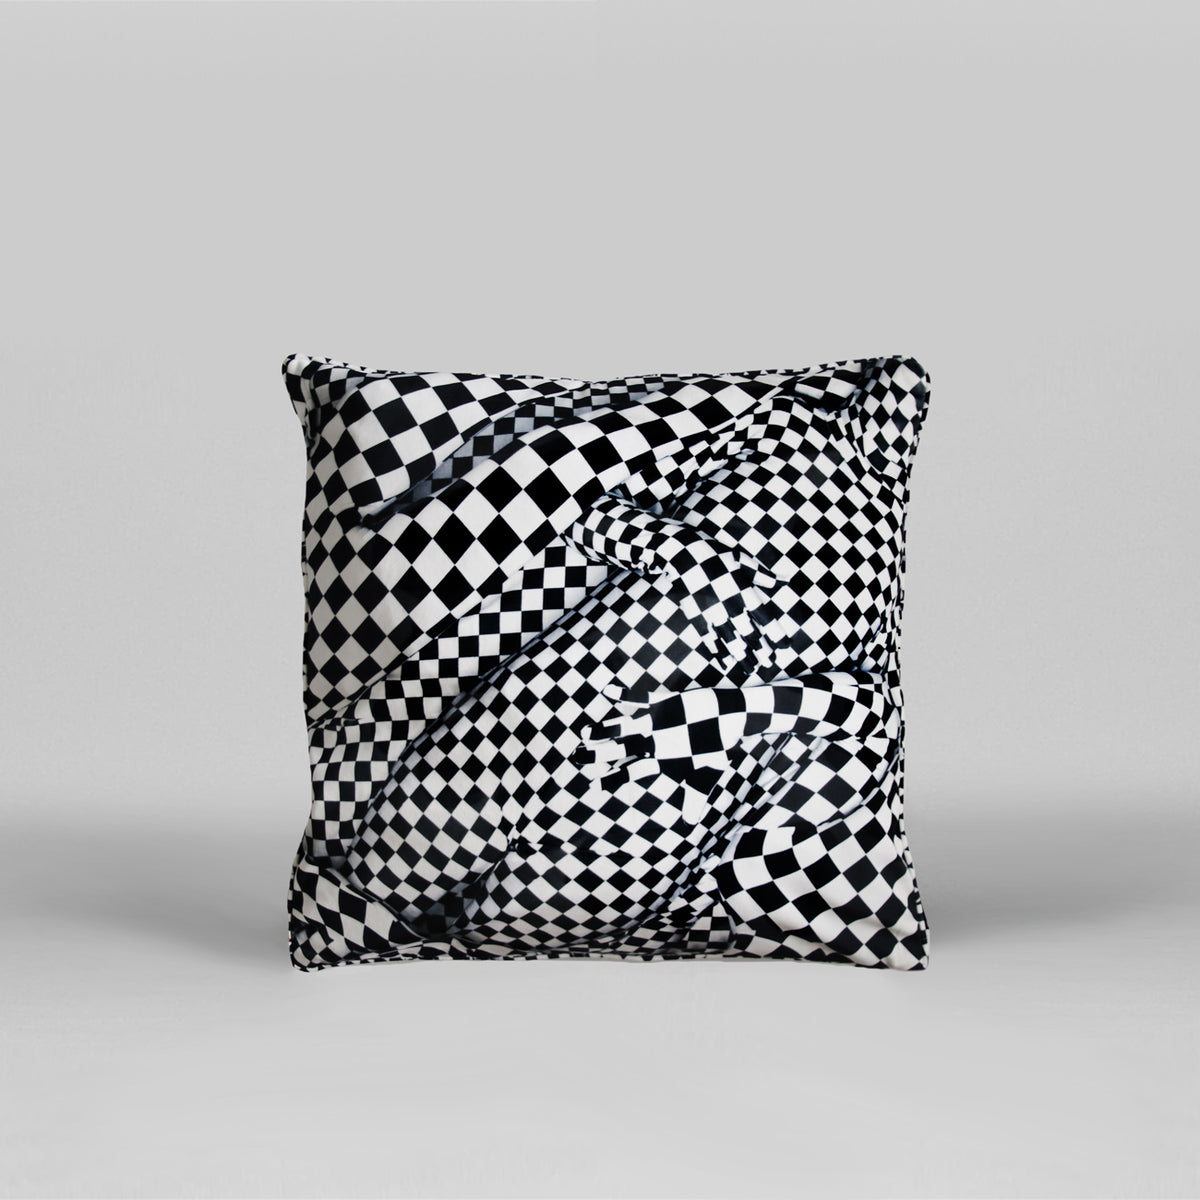 OLAF BREUNING<br>BLACK AND WHITE PEOPLE PATTERN, 2019, (ART93)